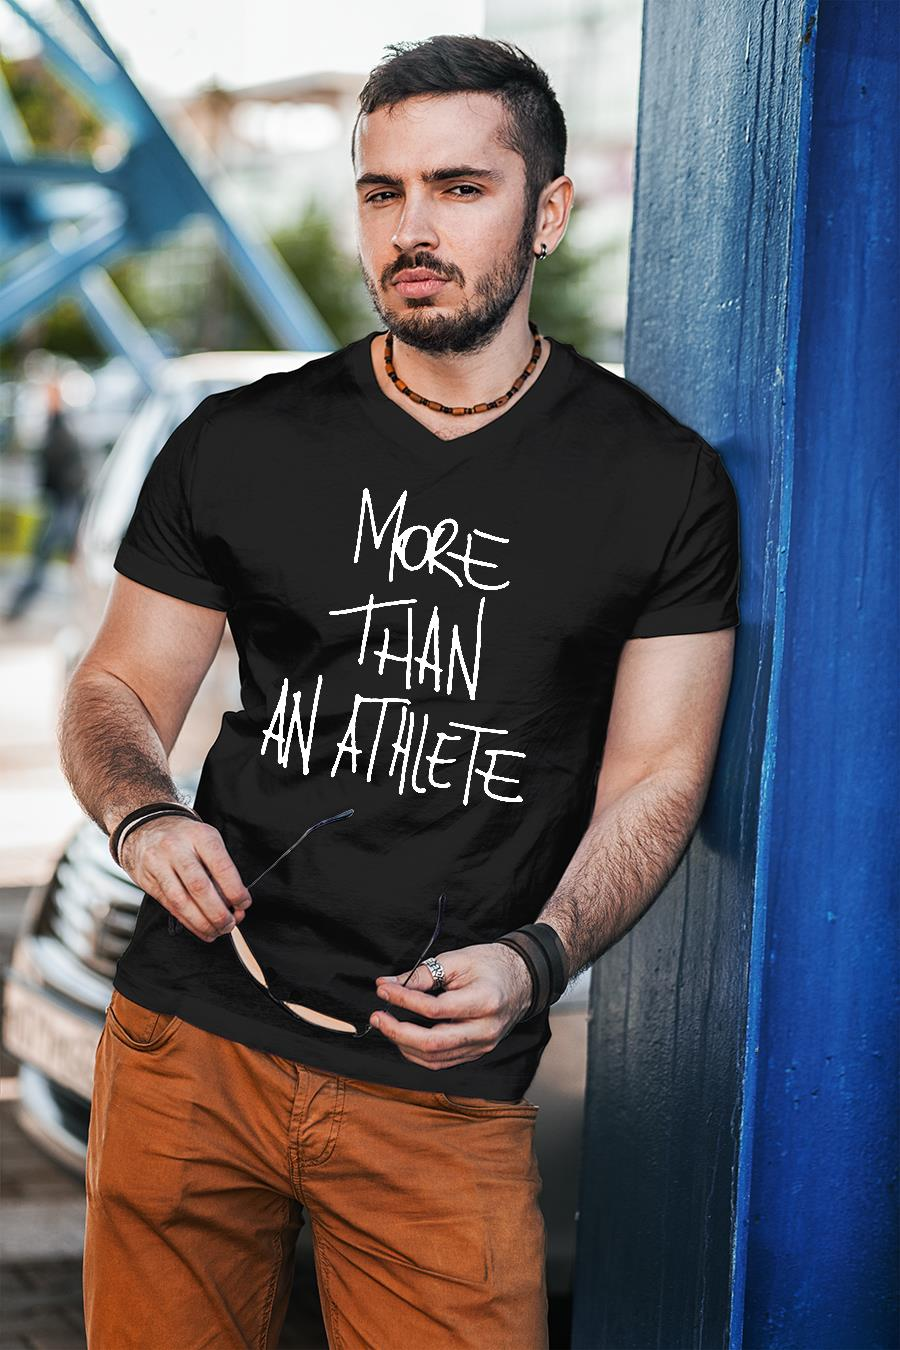 More than an athlete shirt unisex